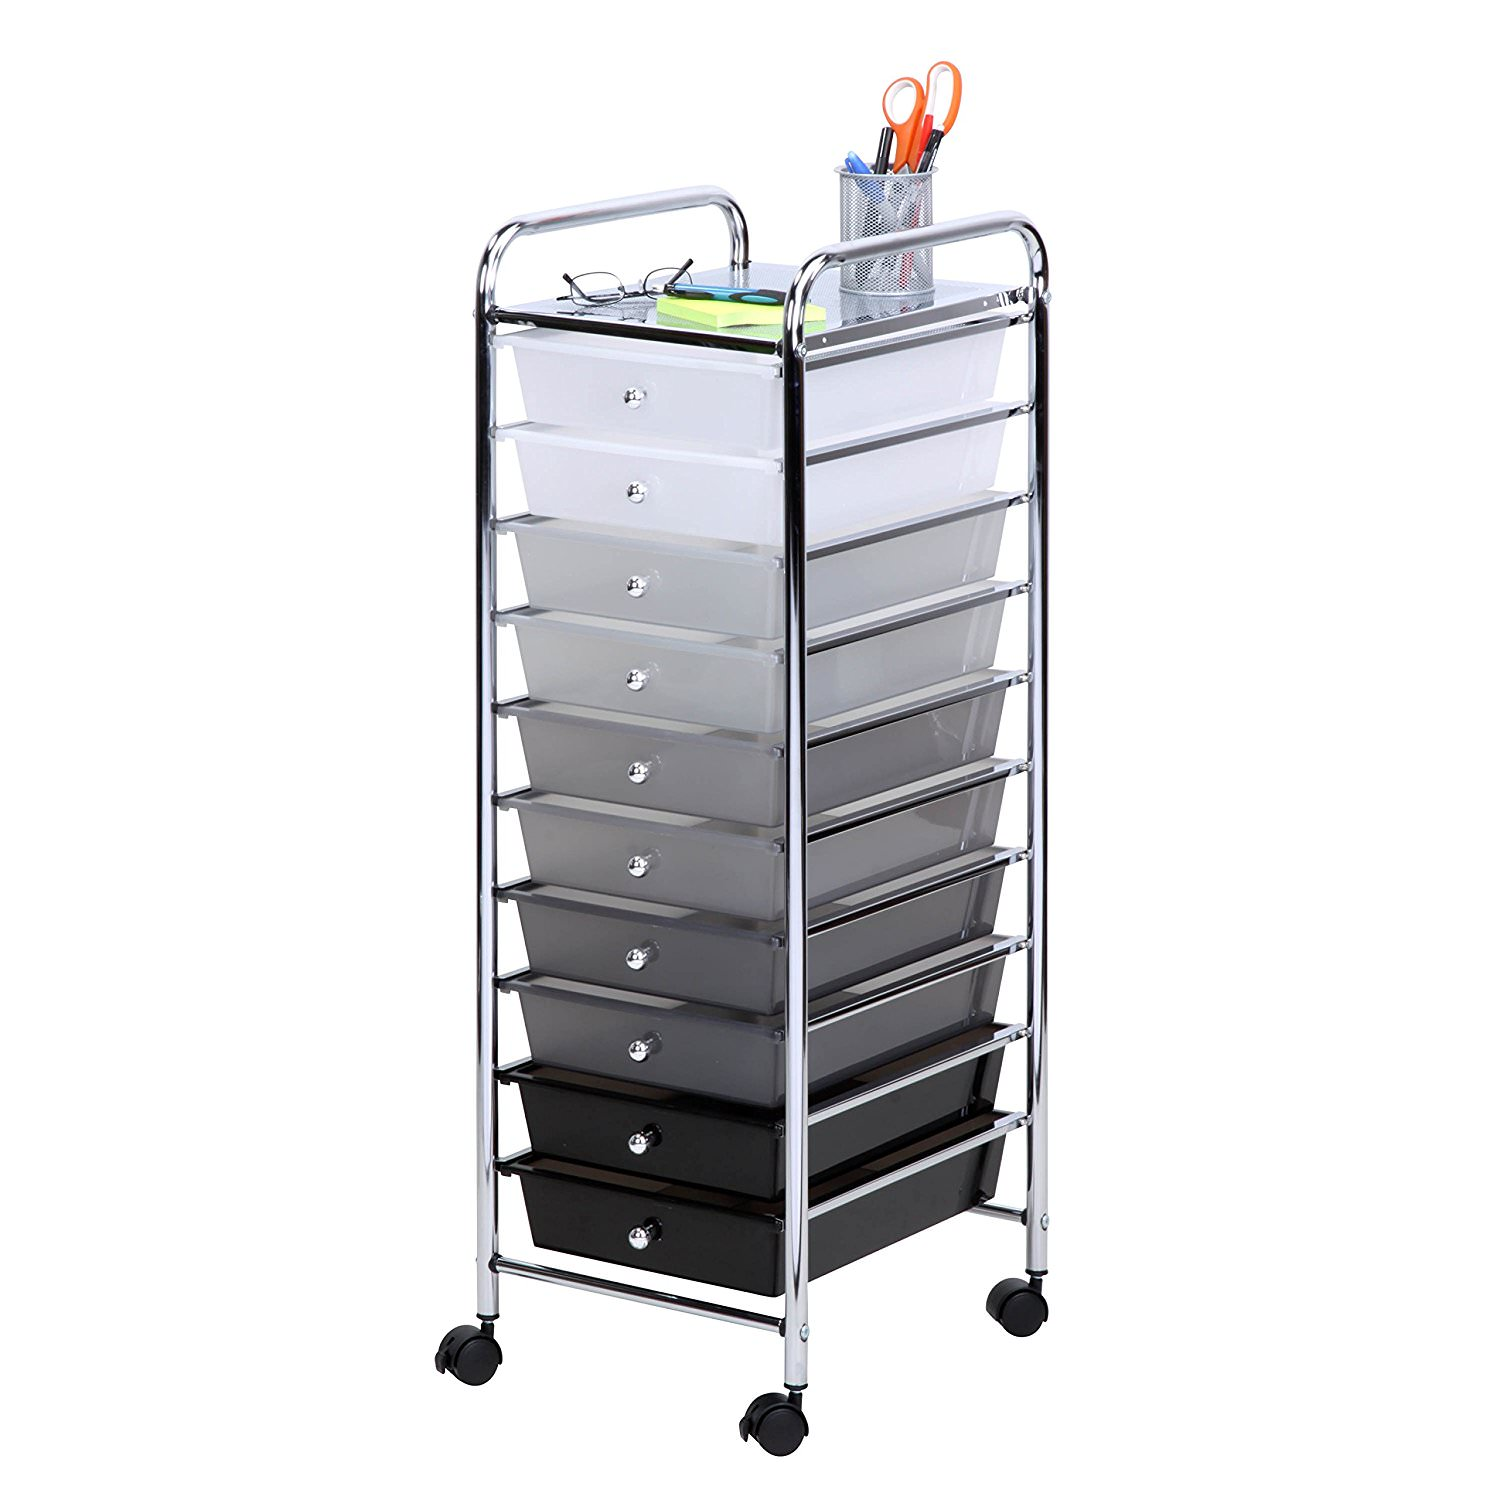 Honey Can Do Rolling Storage Cart with 10 Shaded Drawers, Multicolor